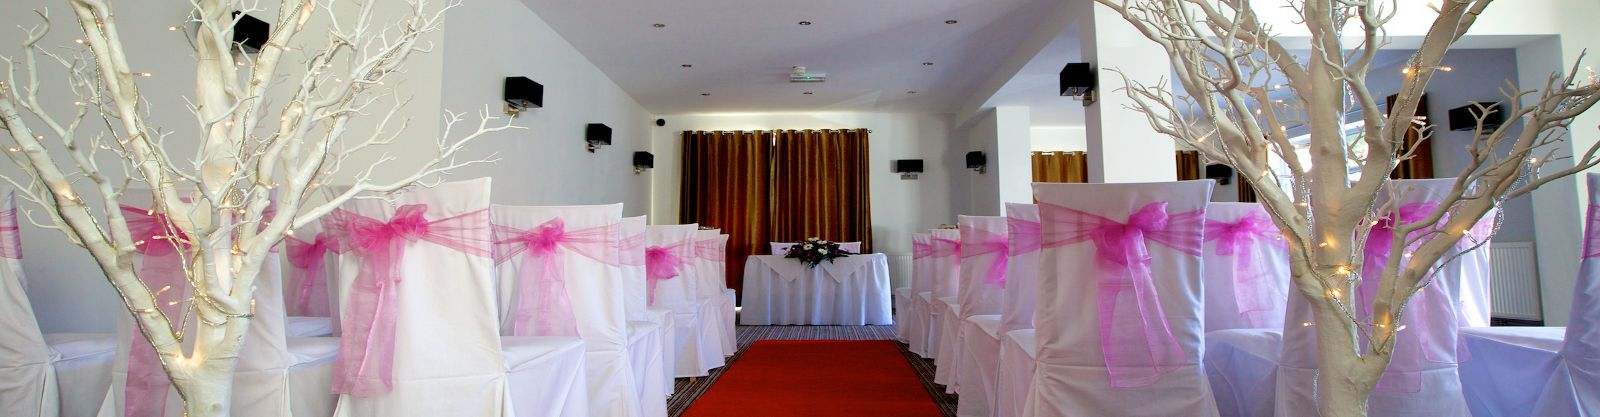 civil-ceremonies-riviera-hotel-bournemouth